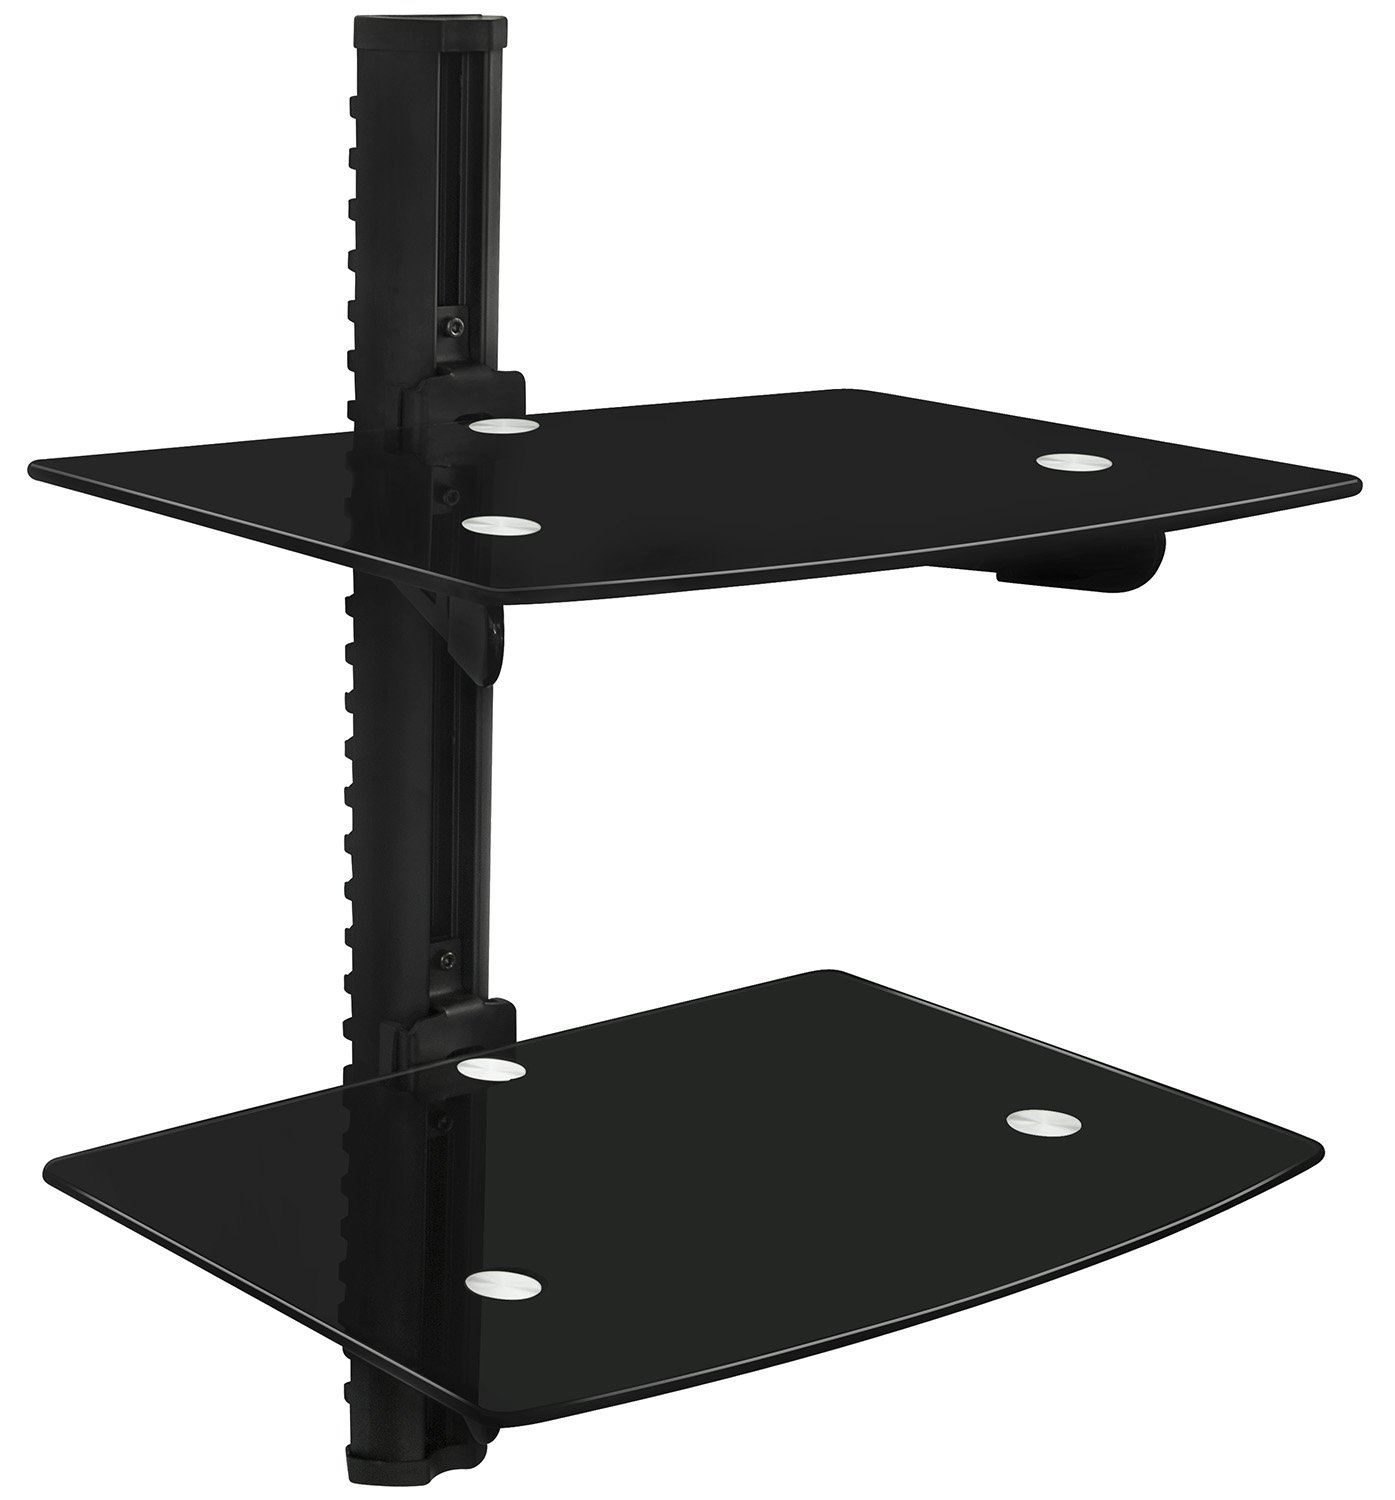 Mount-It! MI-817 Floating Wall Mounted Shelf Bracket Stand for AV Receiver, Component, Cable Box, Playstation4, Xbox1, VCR Player, Blue Ray DVD Player, Projector, Load Capacity 44 lbs, Two Shelves, Tinted Tempered Glass